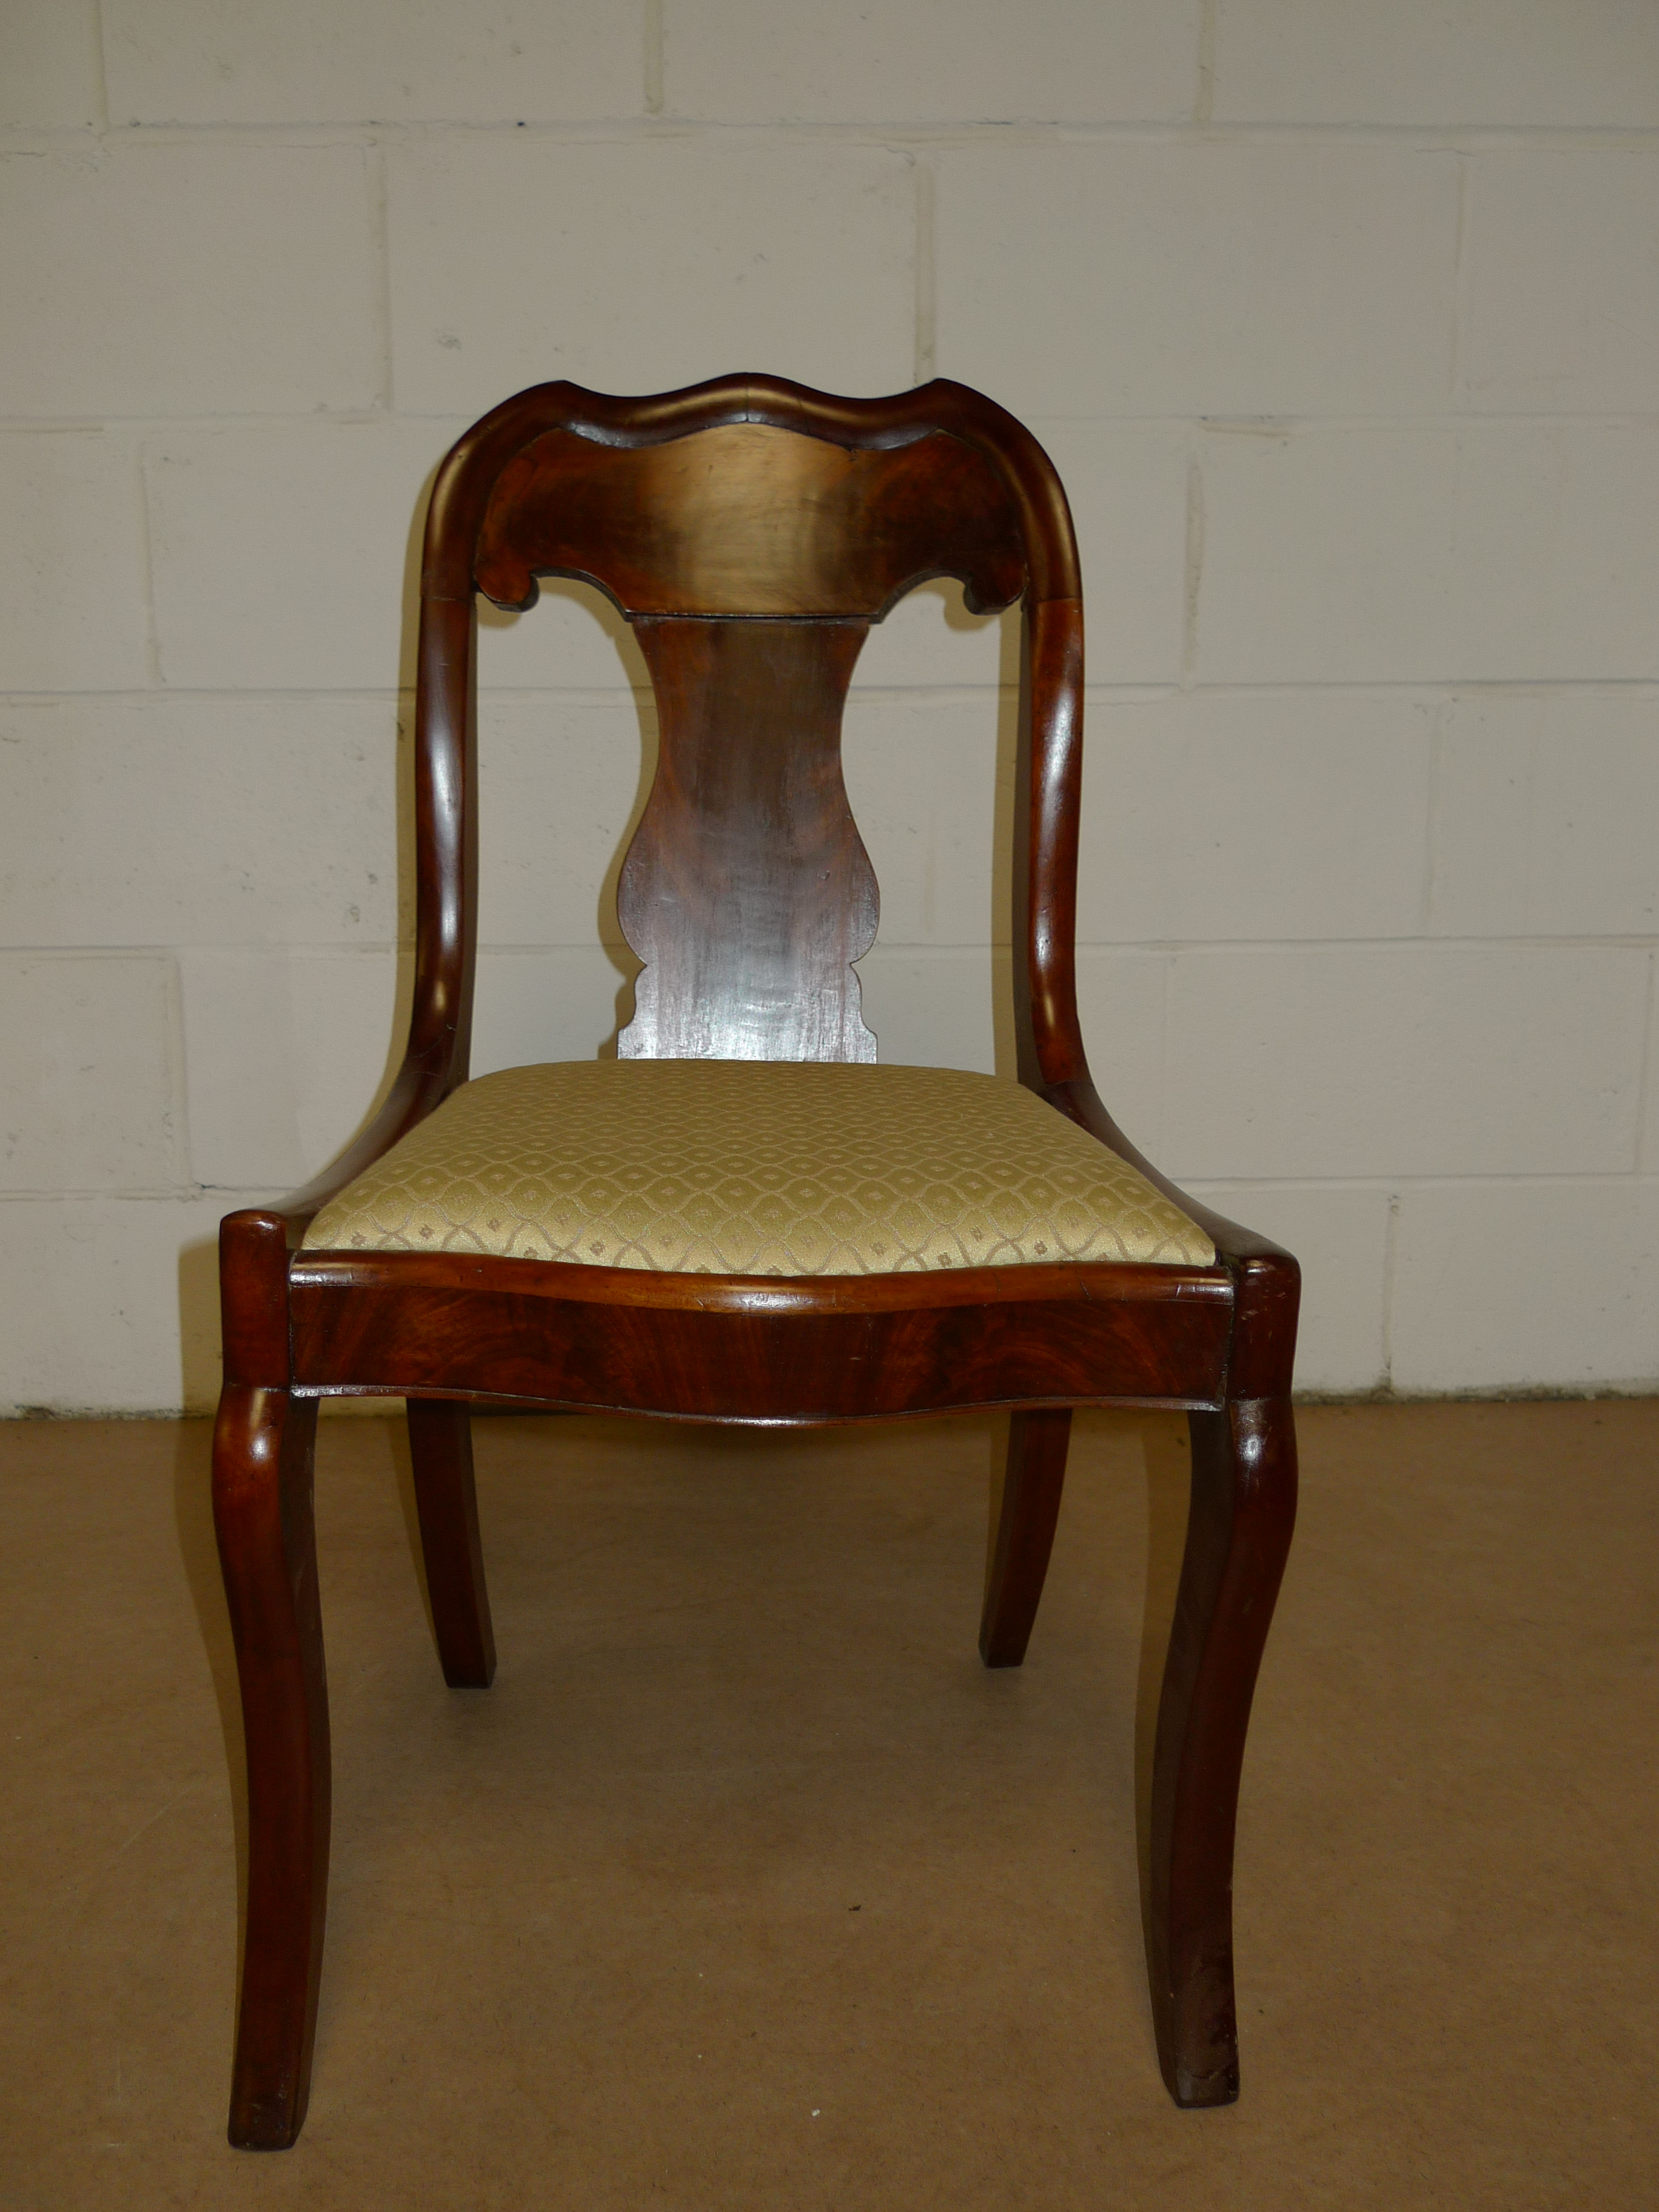 American Empire Off White Wooden Chair Antique 500 00